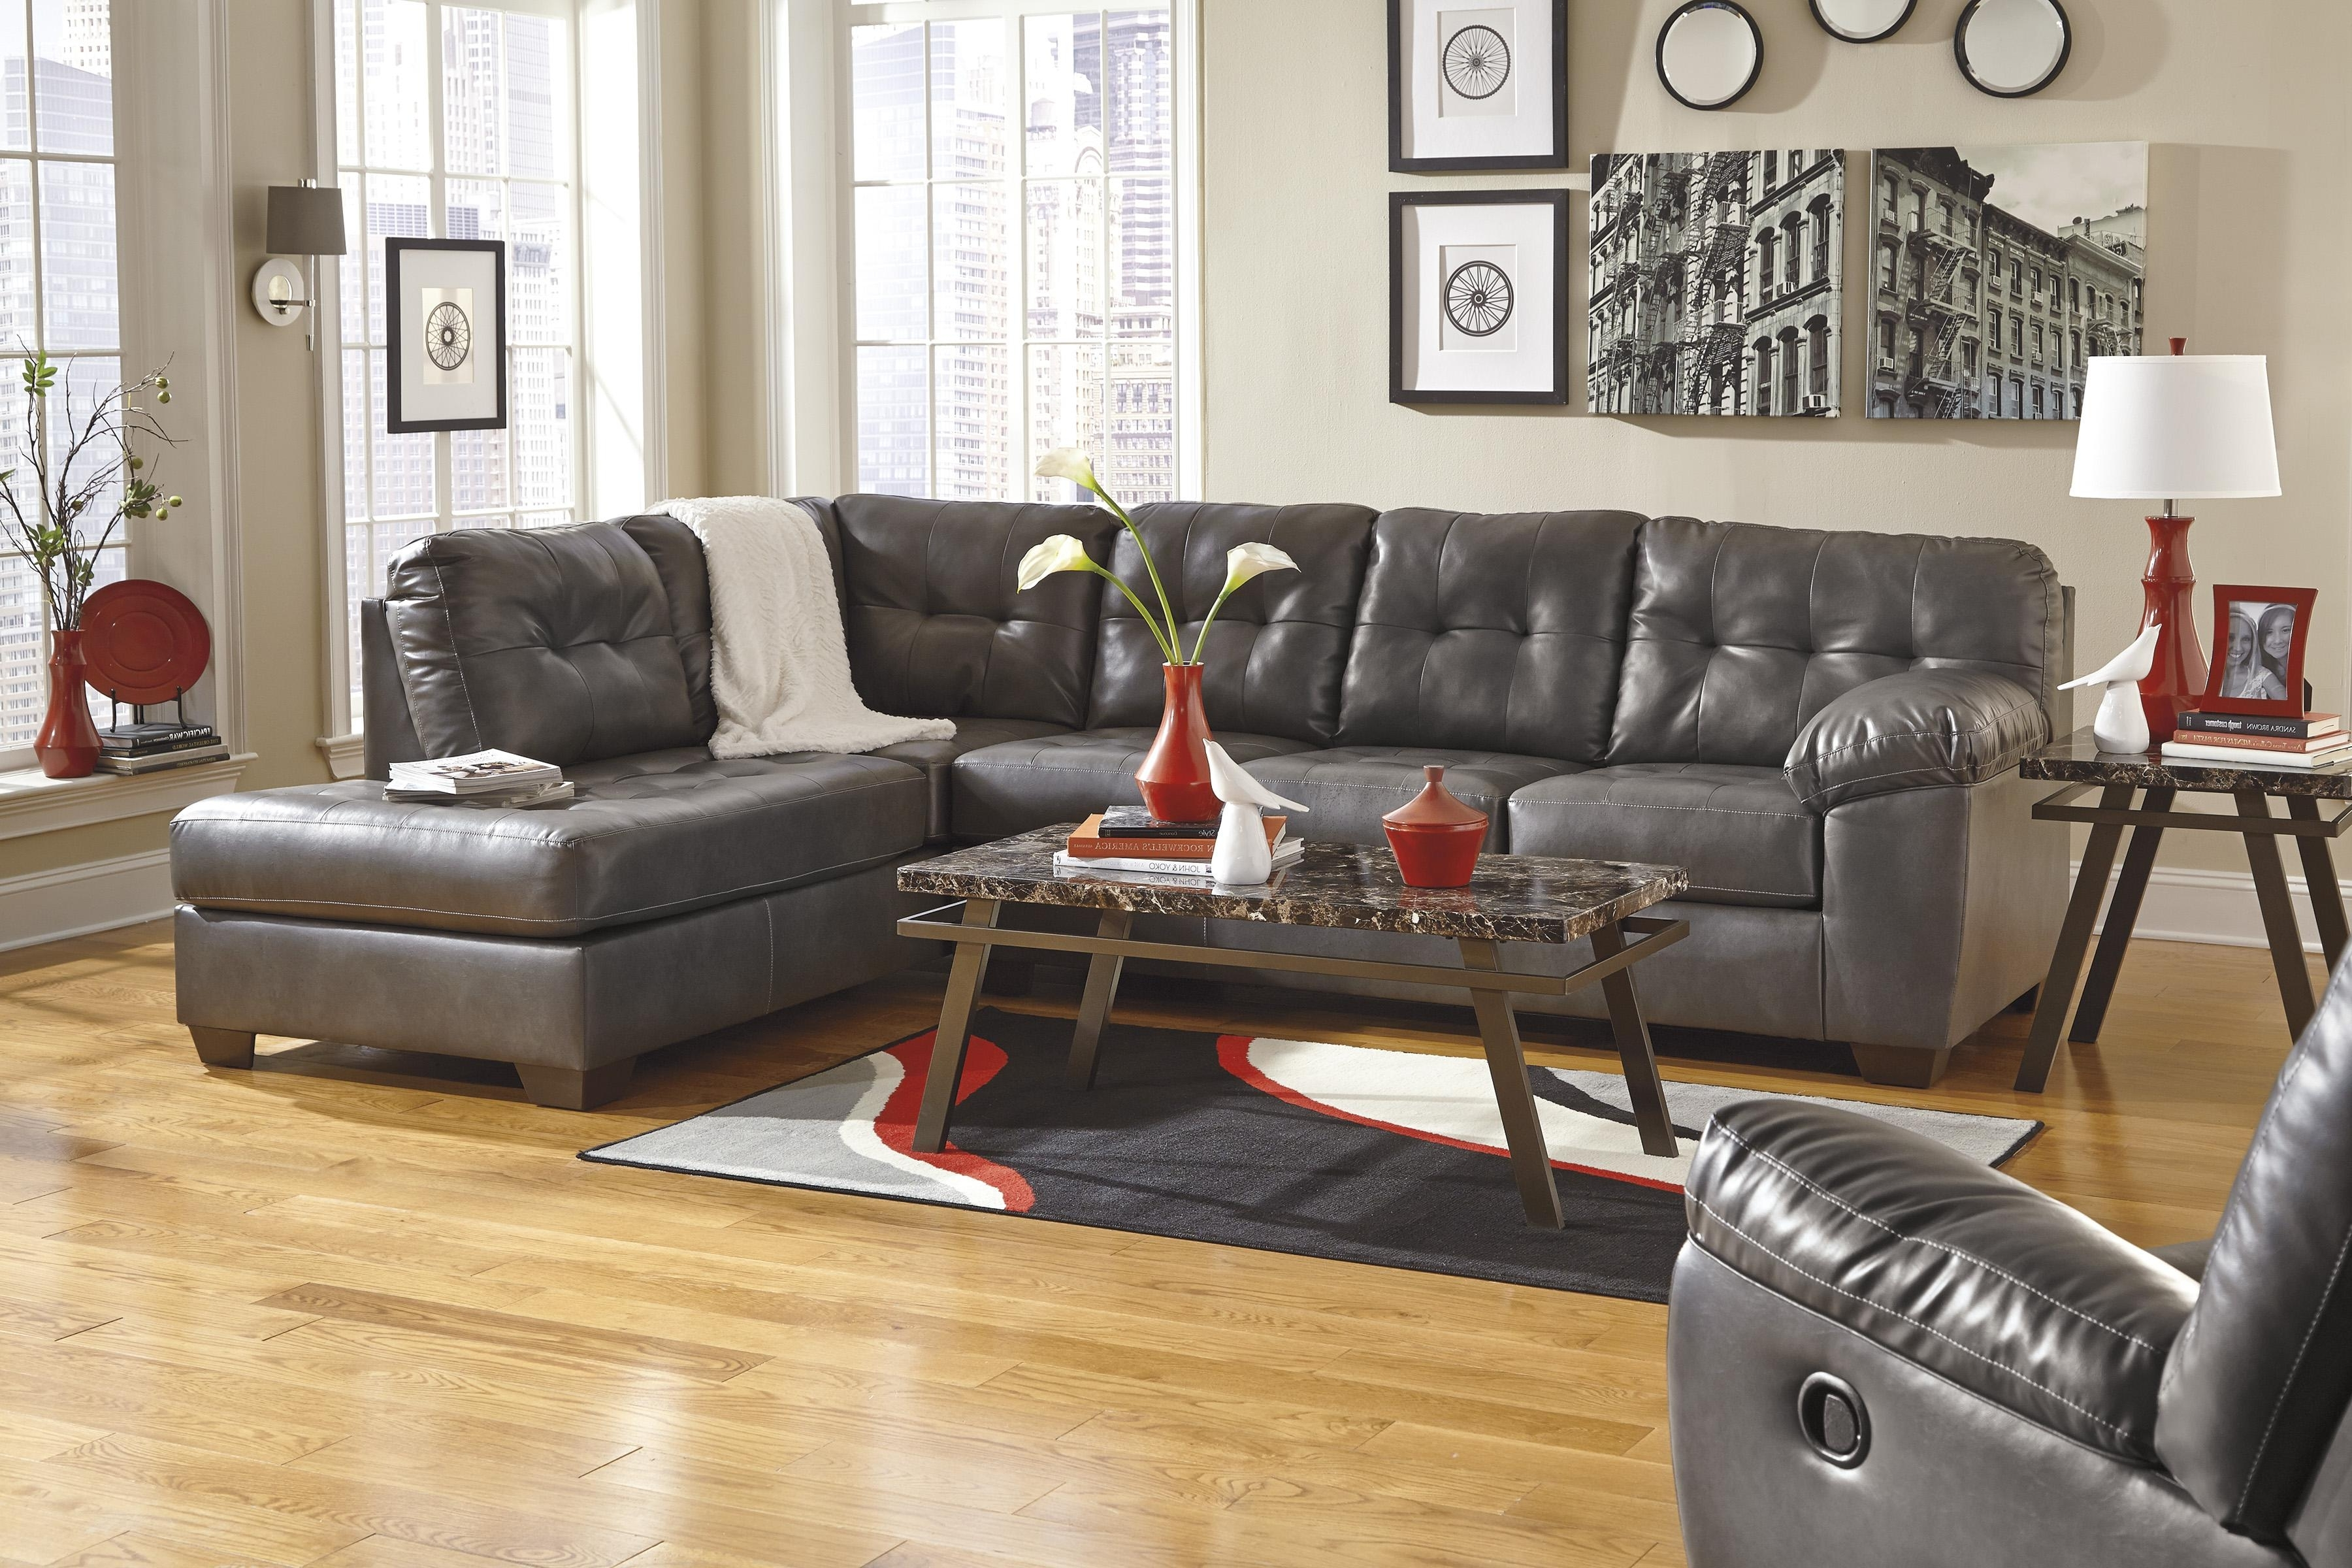 Widely Used Faux Leather Sectional W/ Right Chaise & Tuftingsignature With Regard To Faux Leather Sectional Sofas (View 12 of 15)